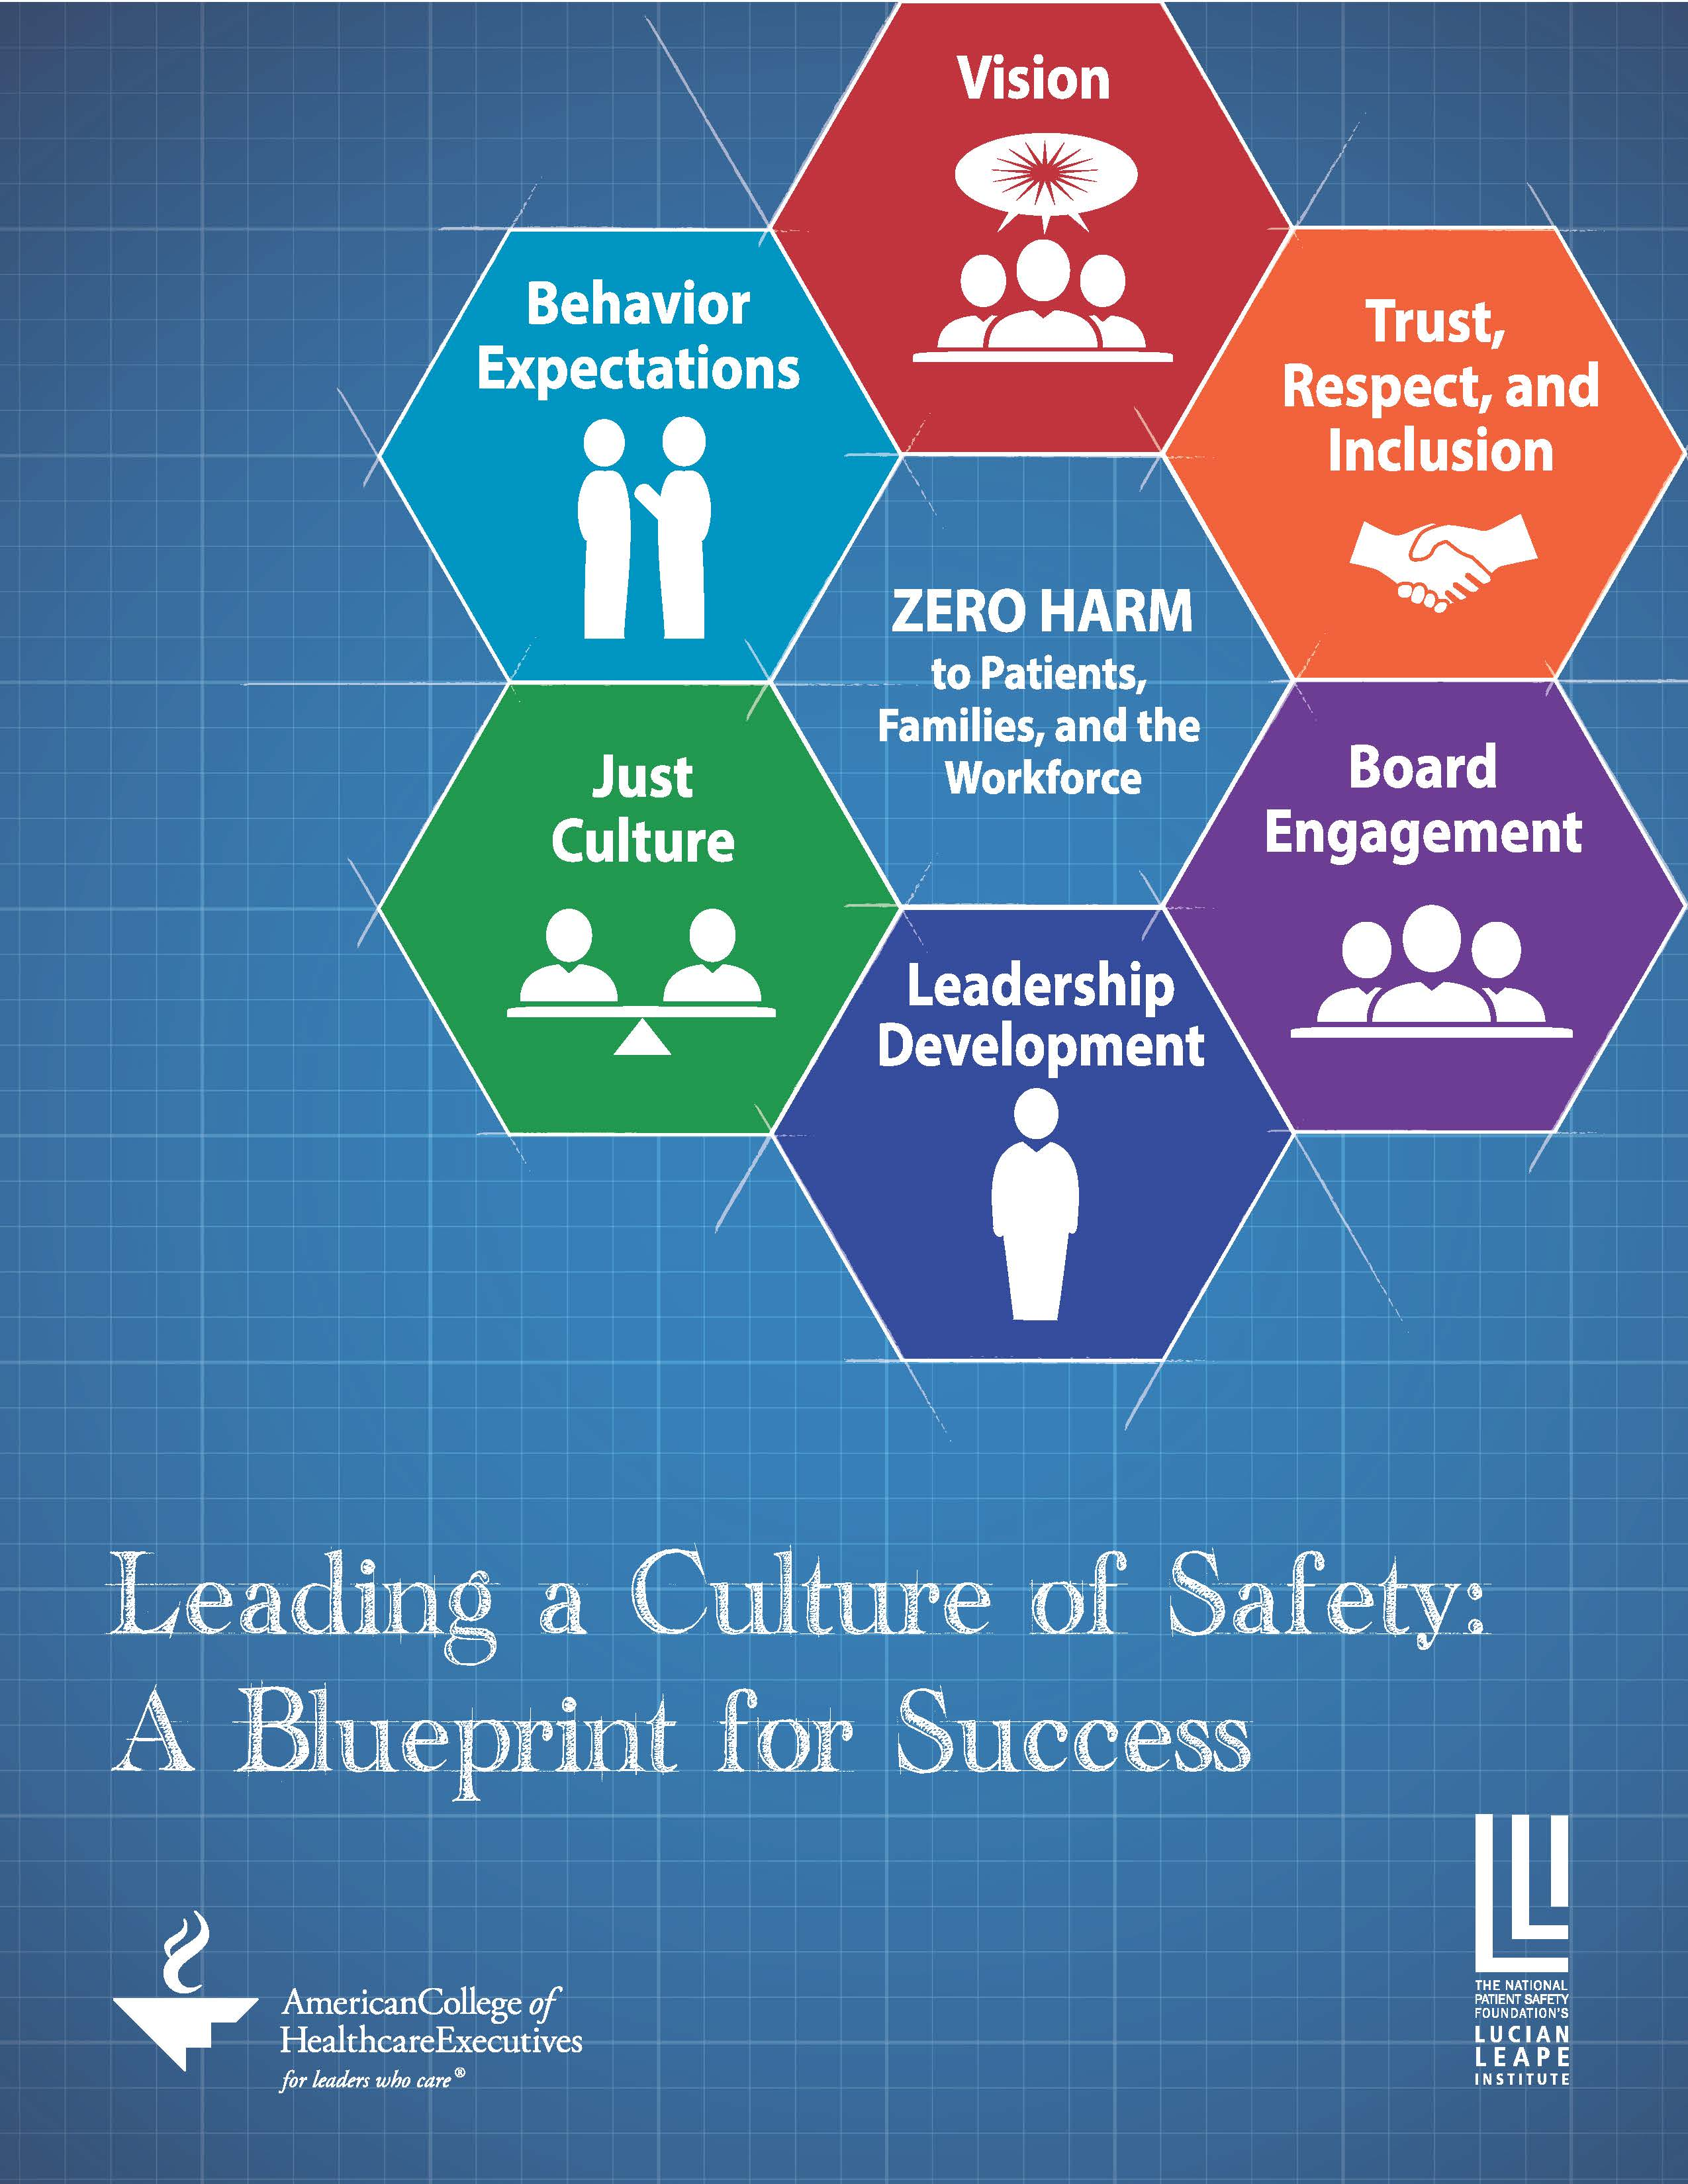 American college of healthcare executives and npsf lucian leape american college of healthcare executives and npsf lucian leape institute release blueprint for creating and sustaining a culture of safety in healthcare malvernweather Choice Image